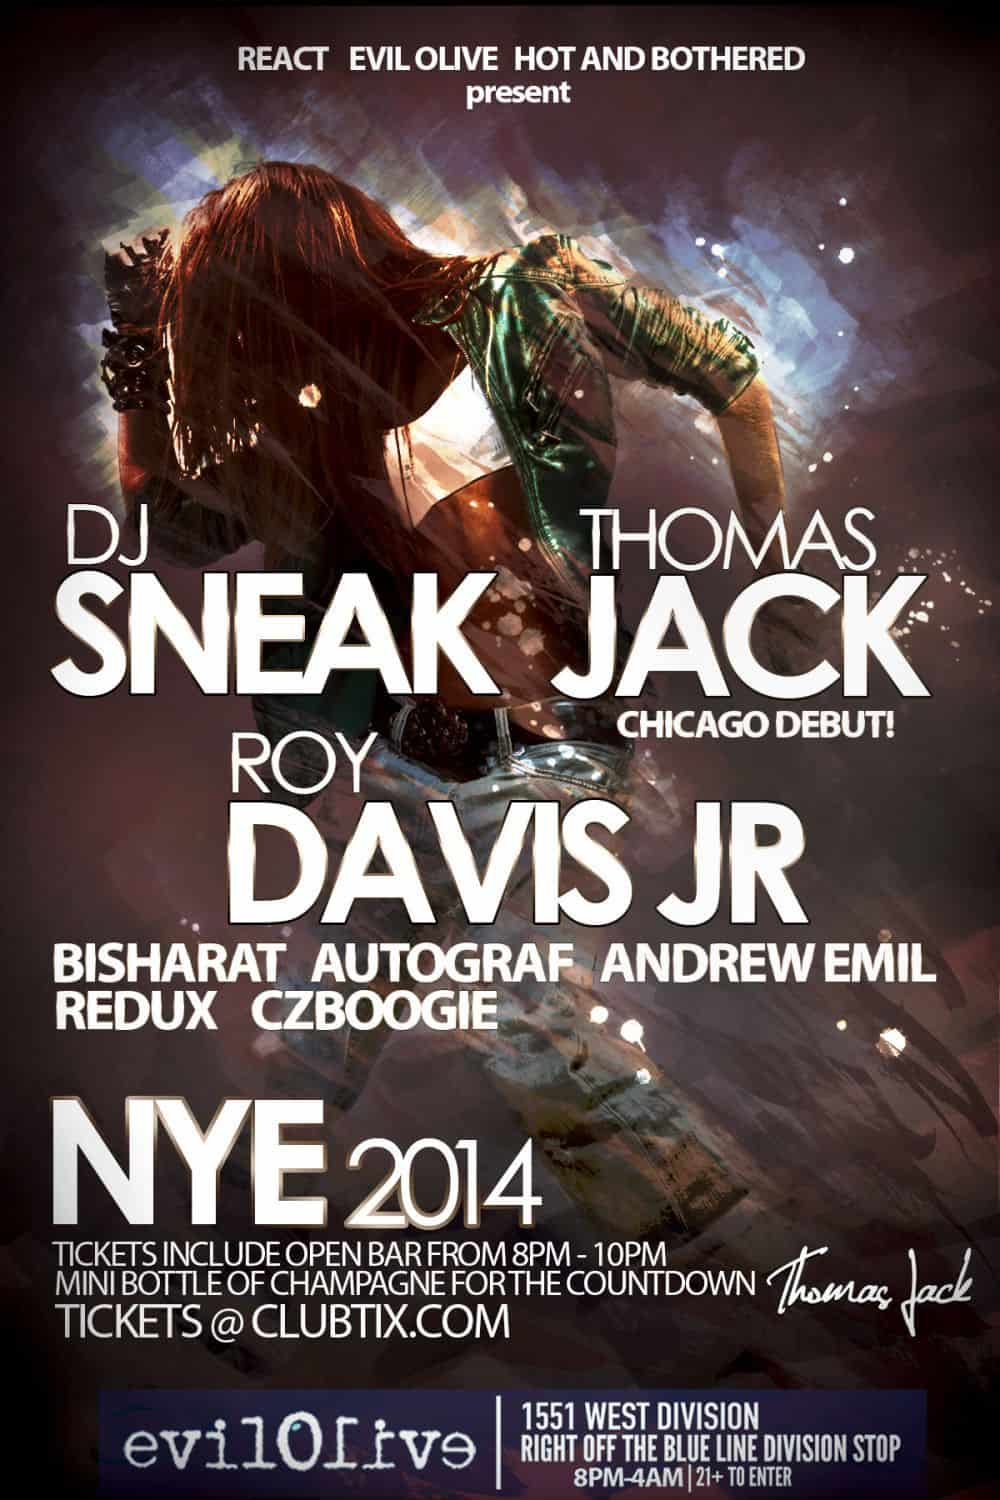 dj giveaway ticket giveaway dj sneak thomas jack nye party in chicago 1029